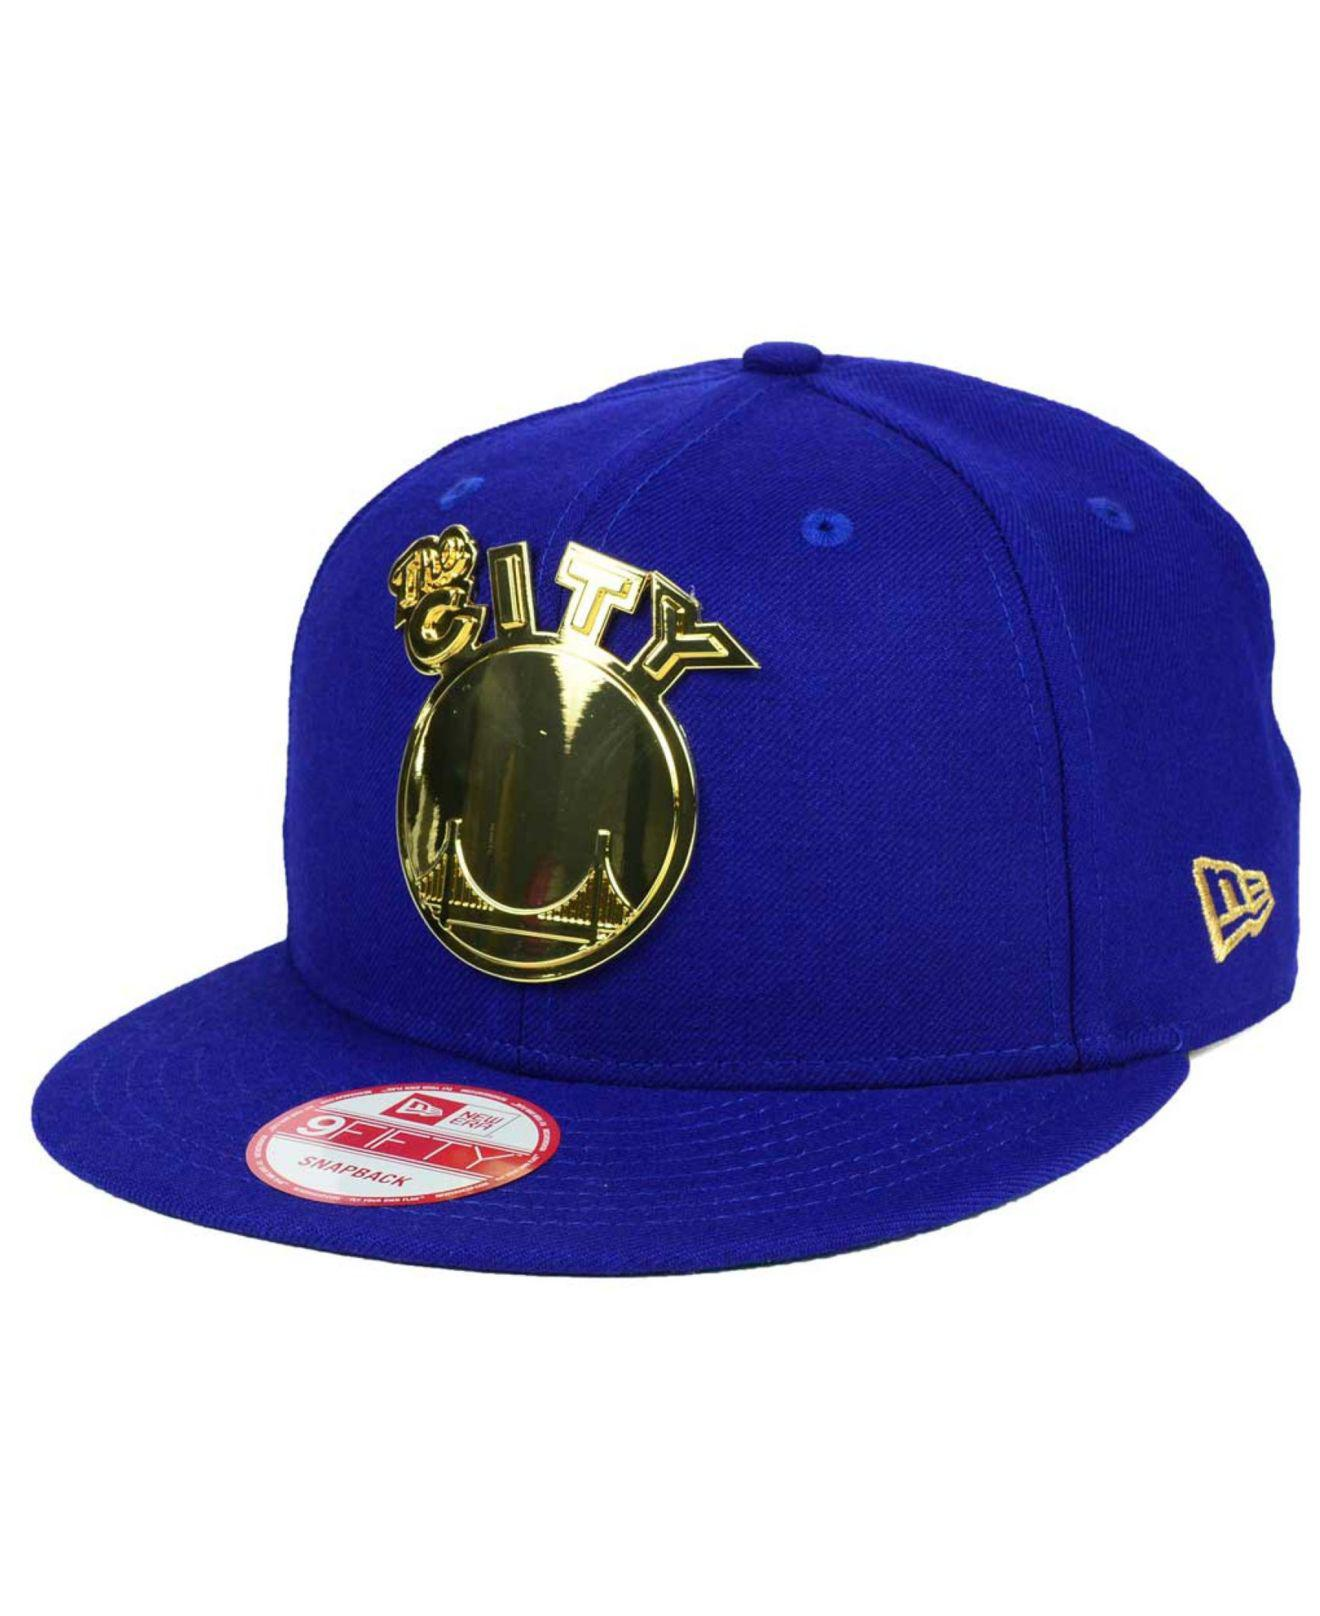 competitive price 1c0d0 cae99 Lyst - KTZ Golden State Warriors Hwc League O gold 9fifty Snapback ...